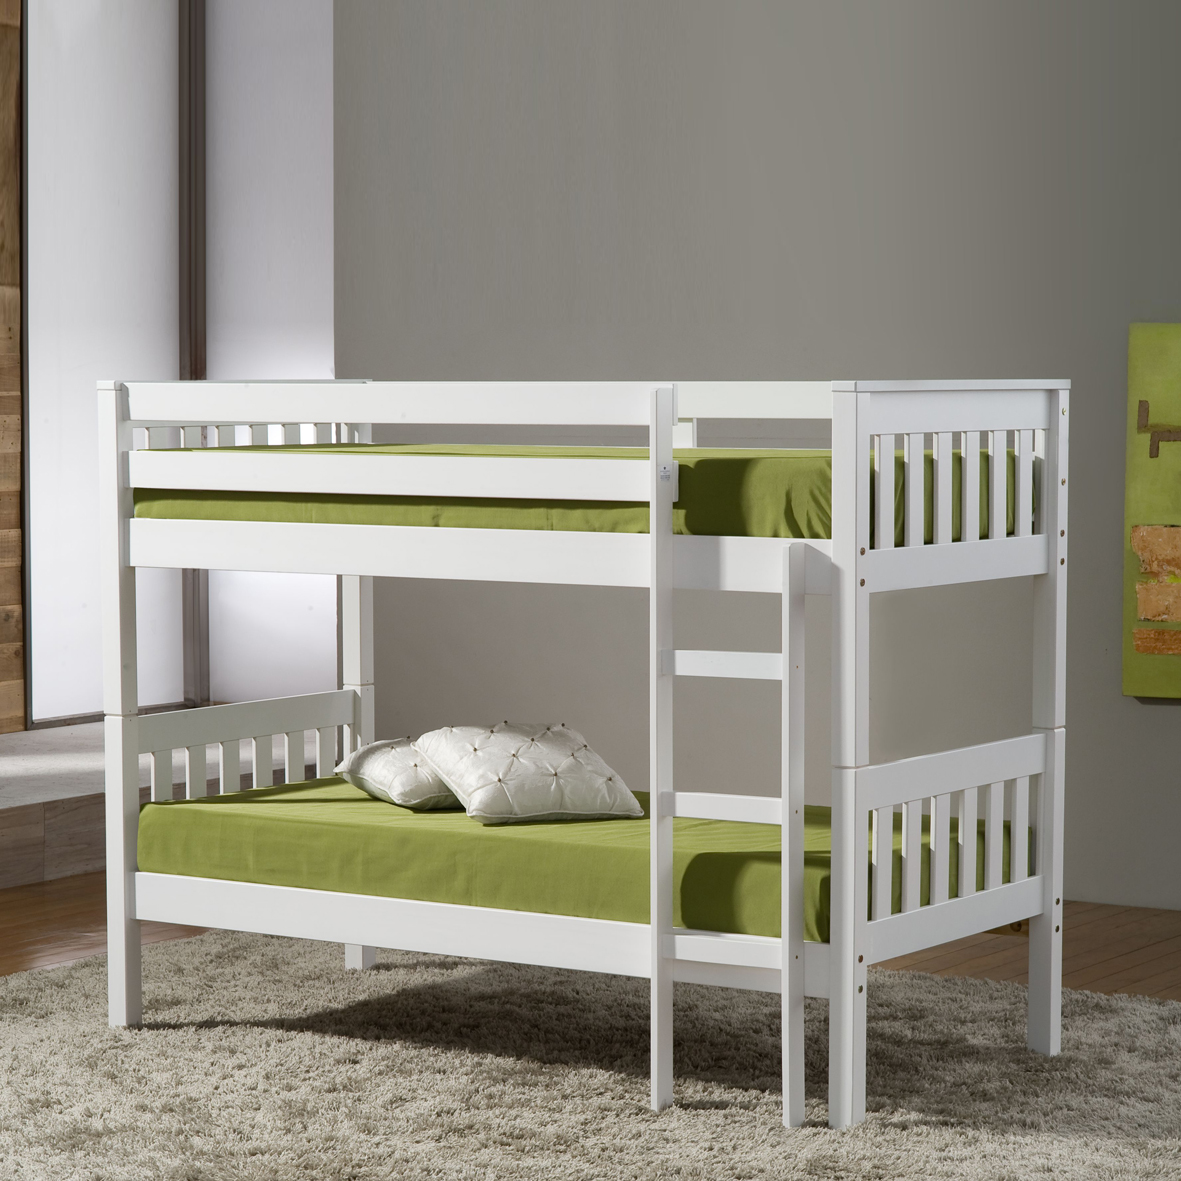 Loft Bed For Small Space Bunk Bed For Small Space Chasing The Feeling Of